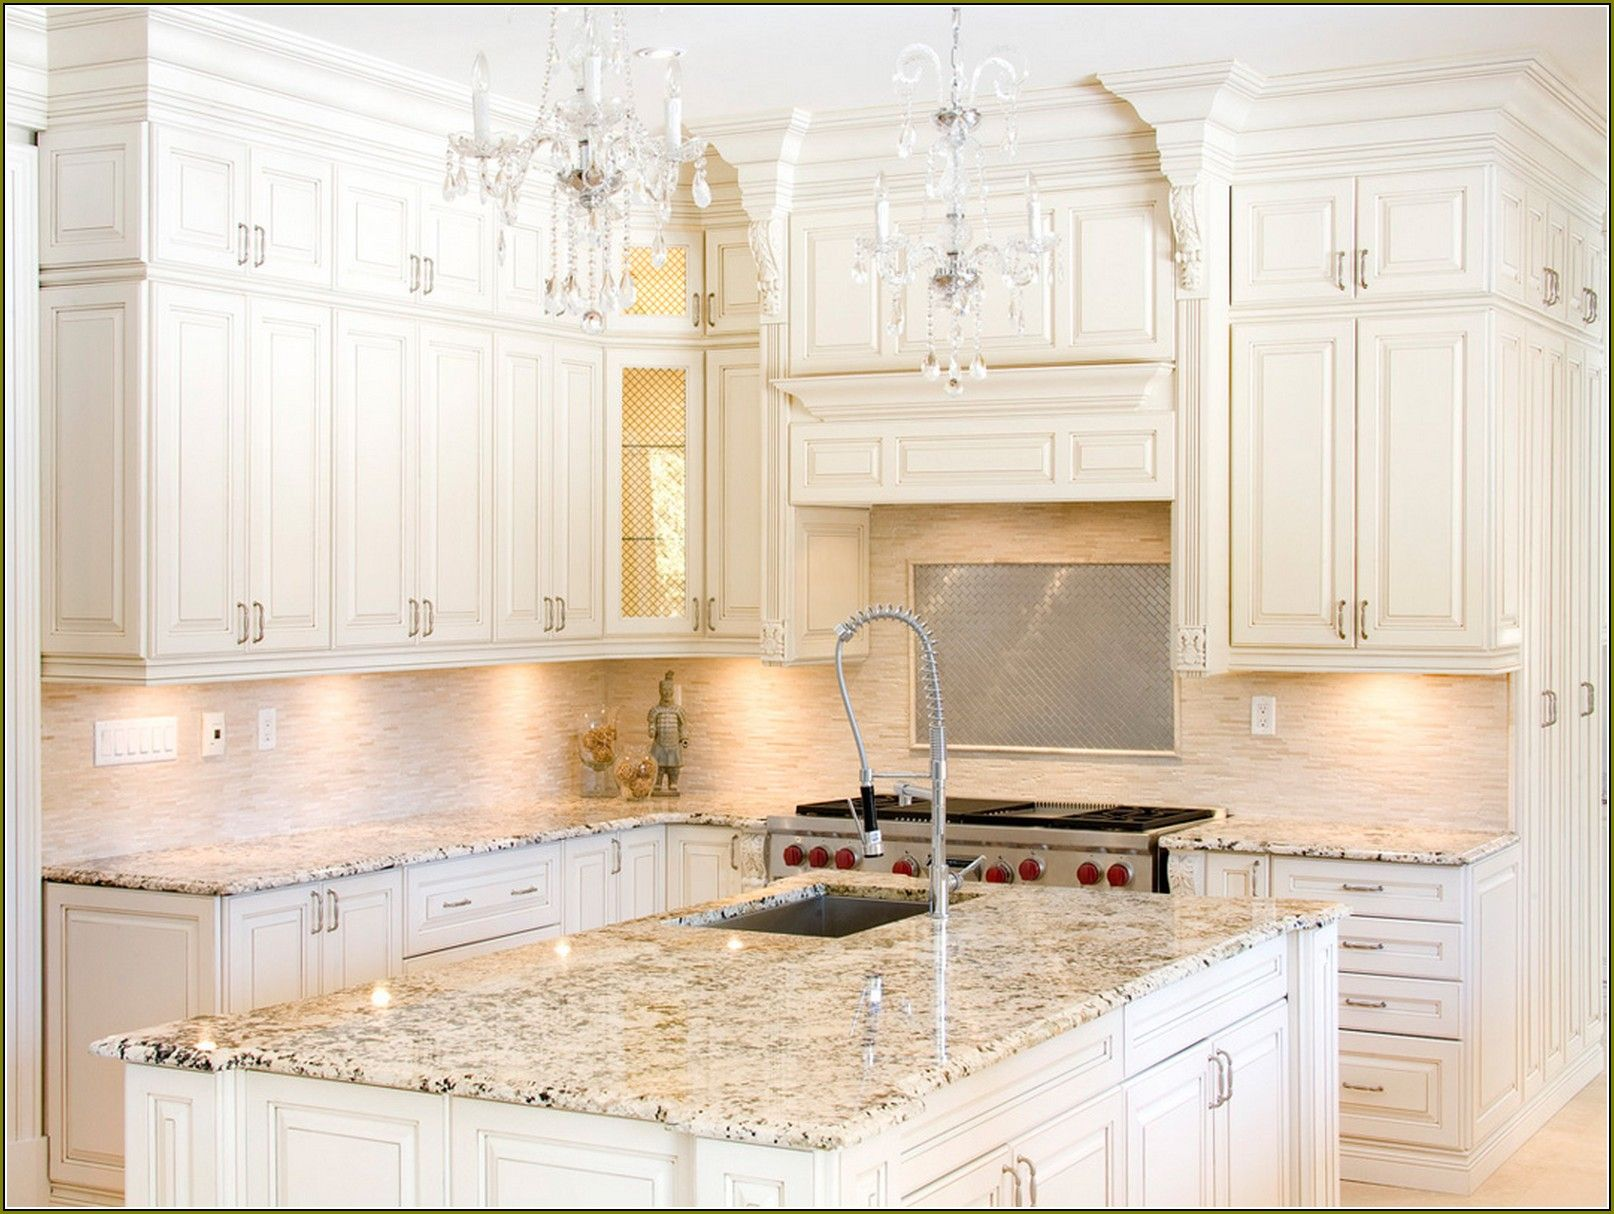 Off White Cabinets Kitchen kitchen granite countertops tile cupboards | house: kitchen